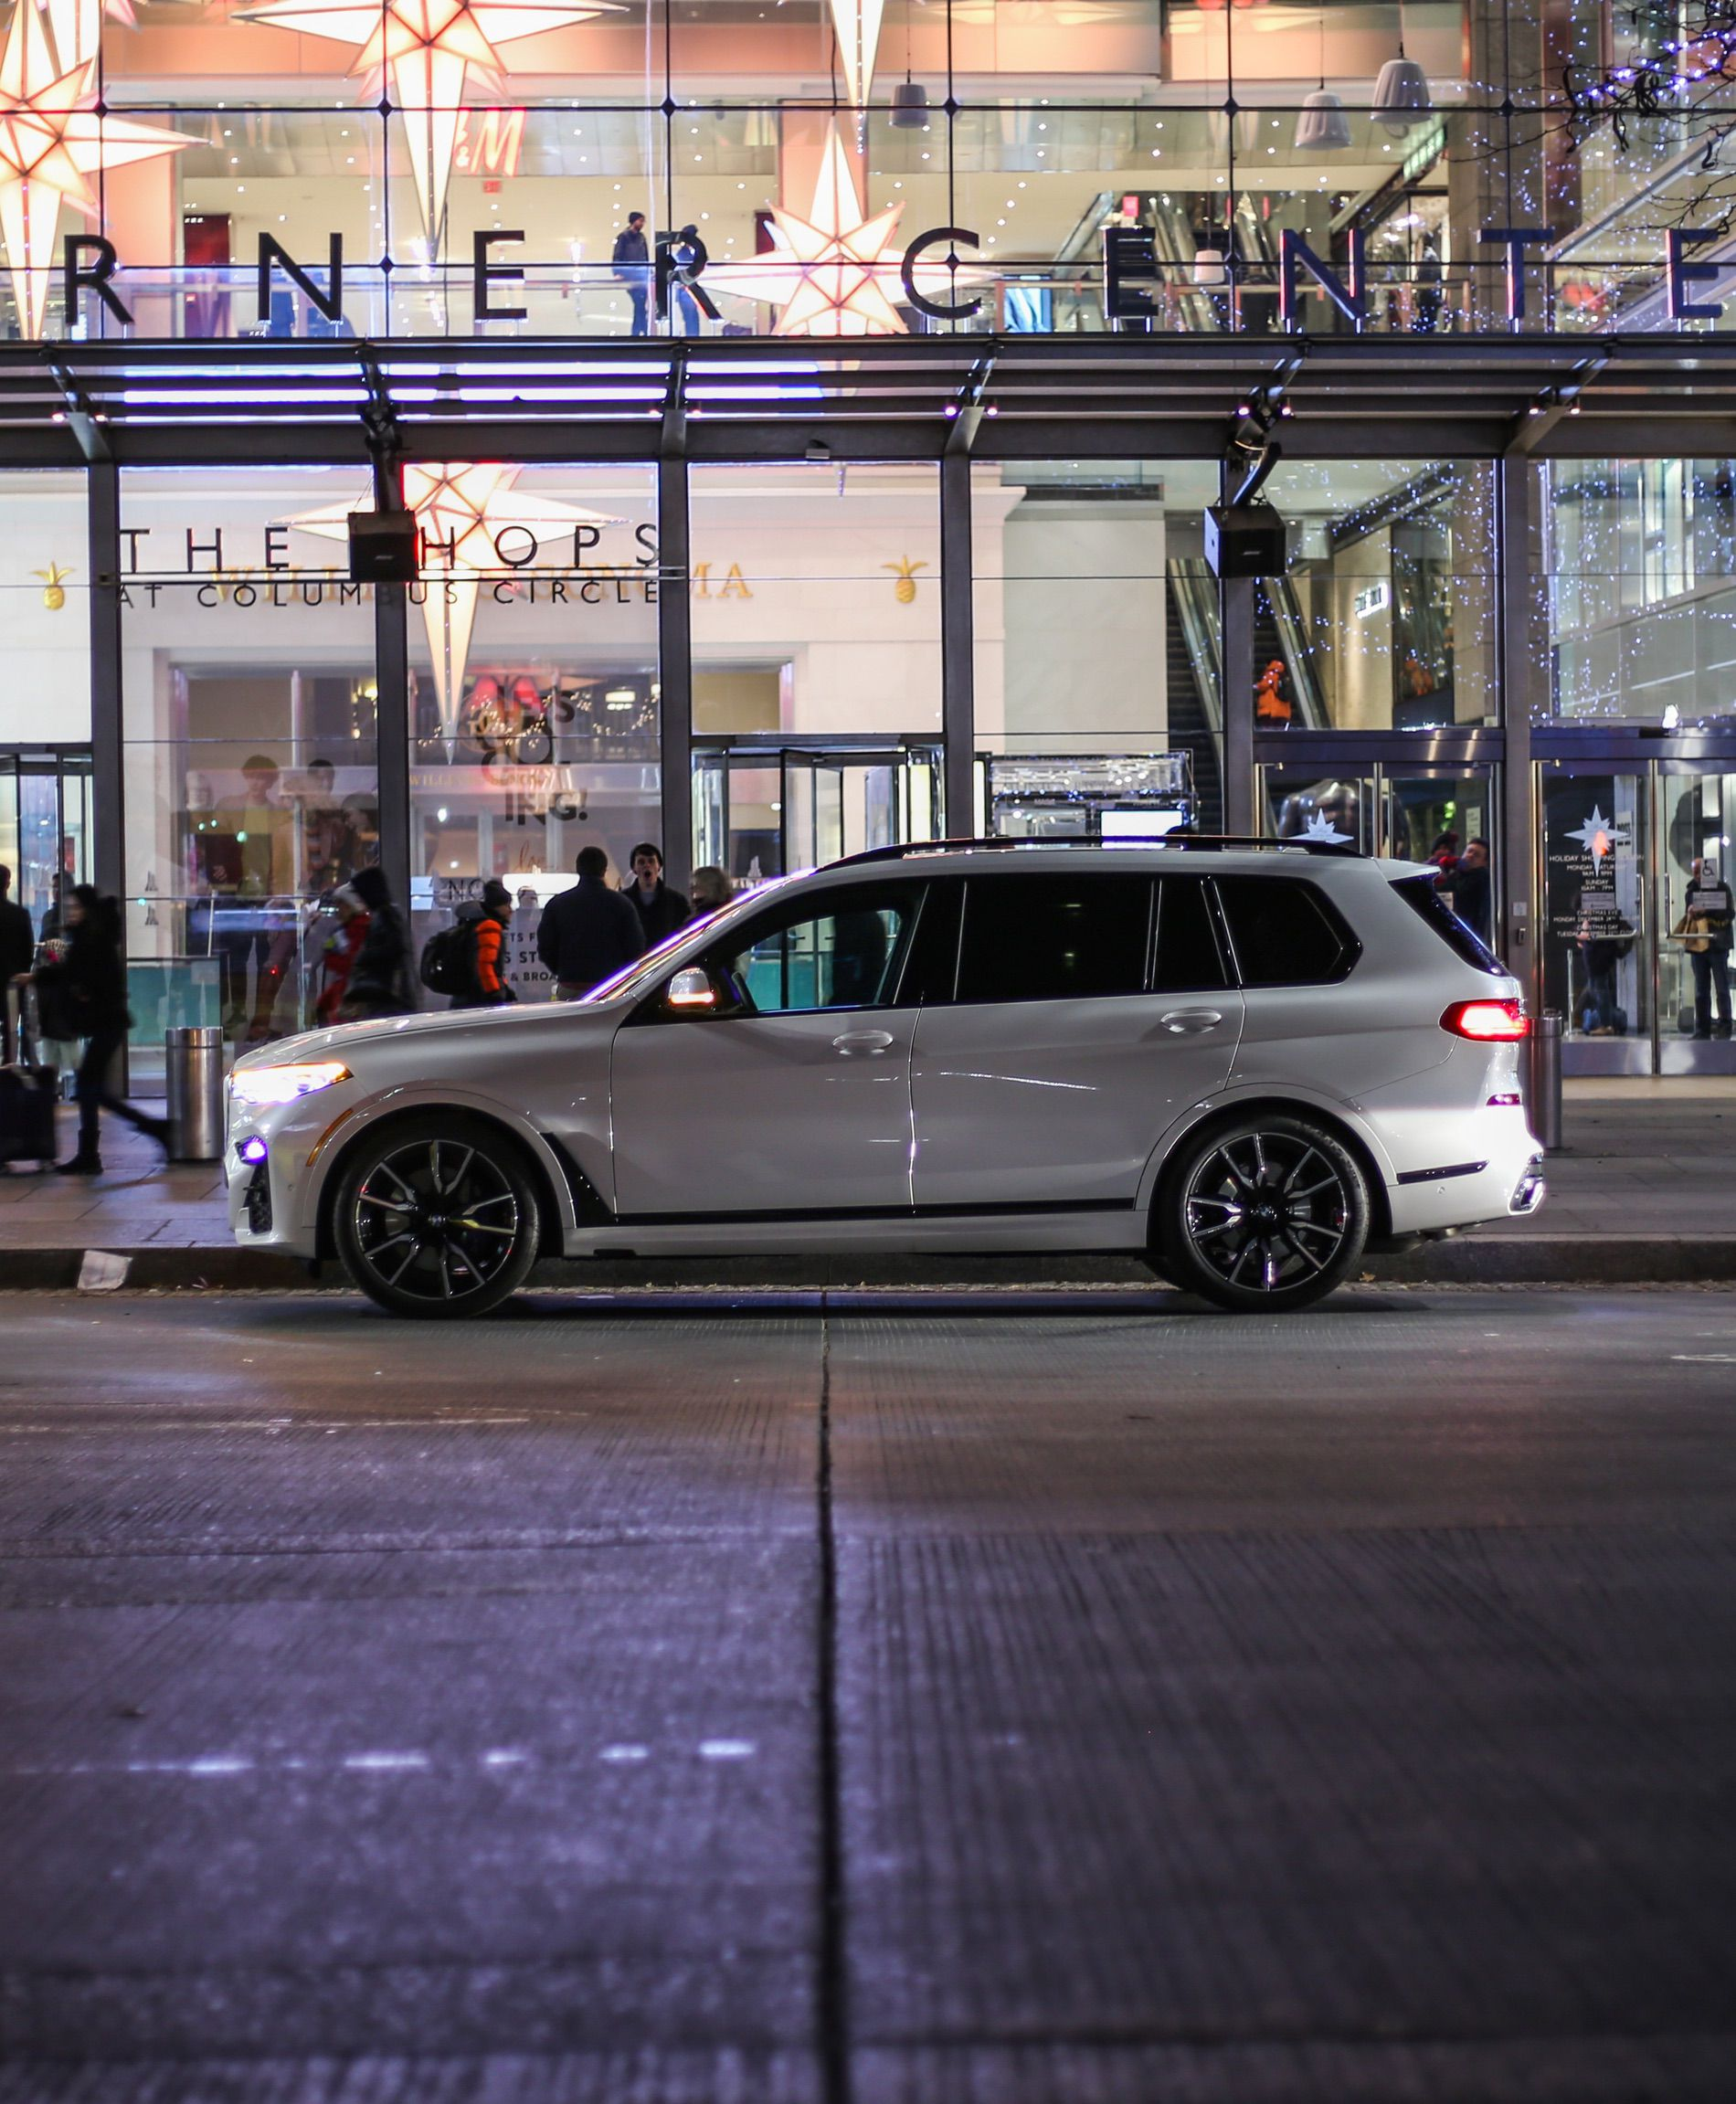 Bmw X7 Interior: Photoshoot With The BMW X7 In New York City